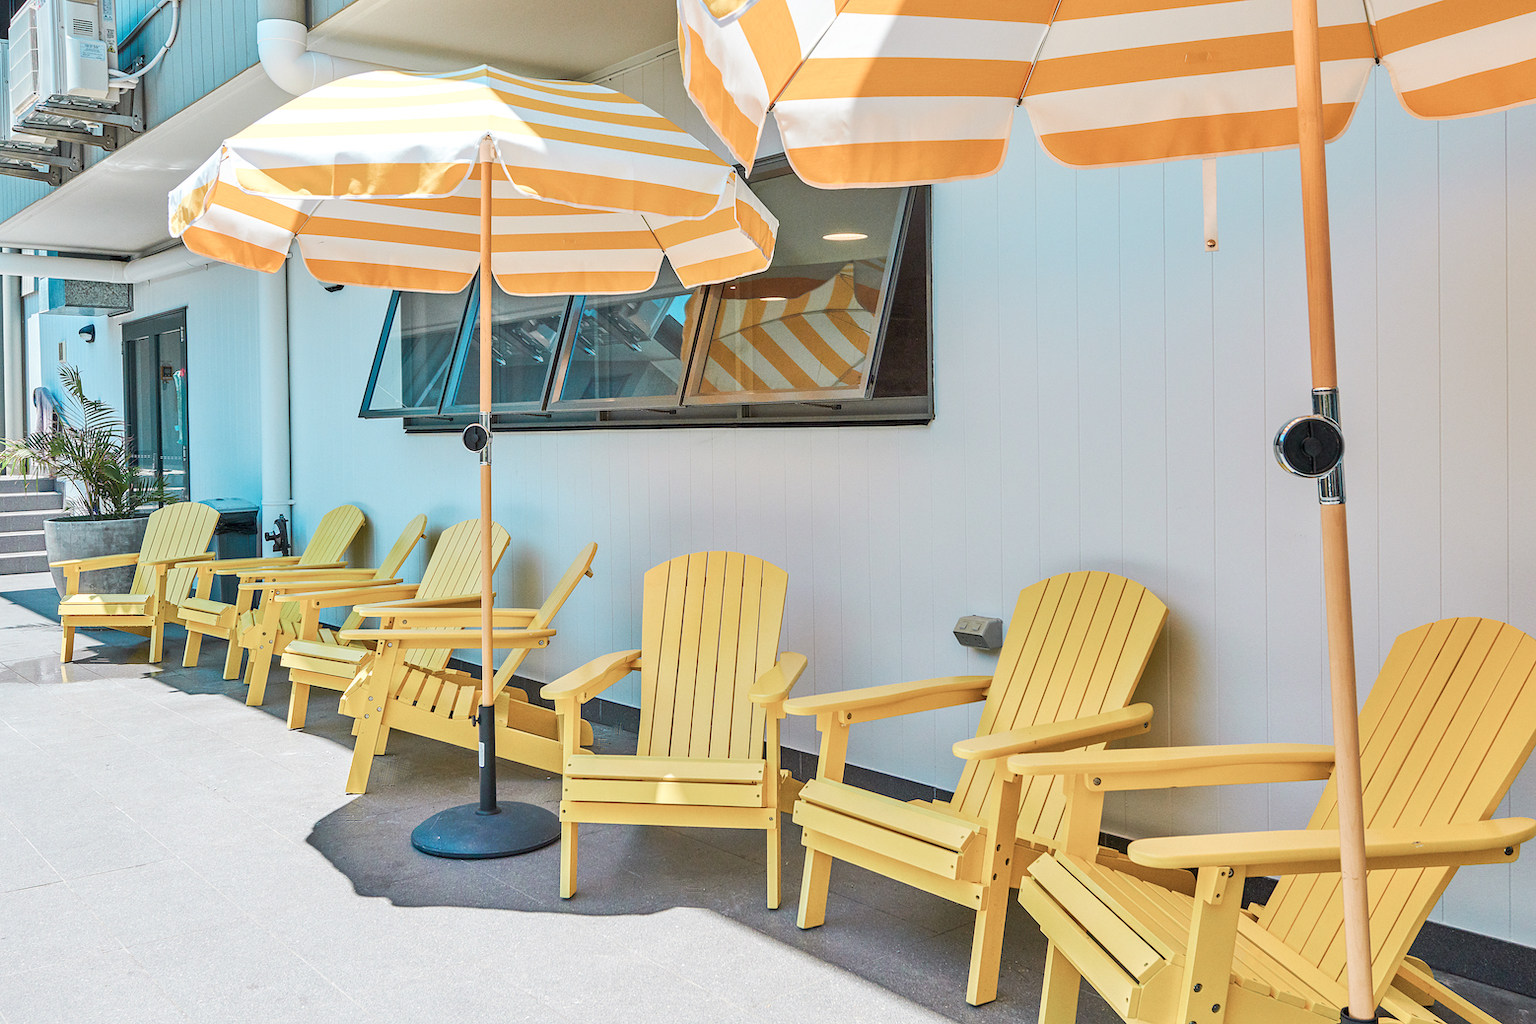 Outdoors chilling on yellow adirondack chairs at The Surf House in Byron Bay. Image: Amy Whitfield